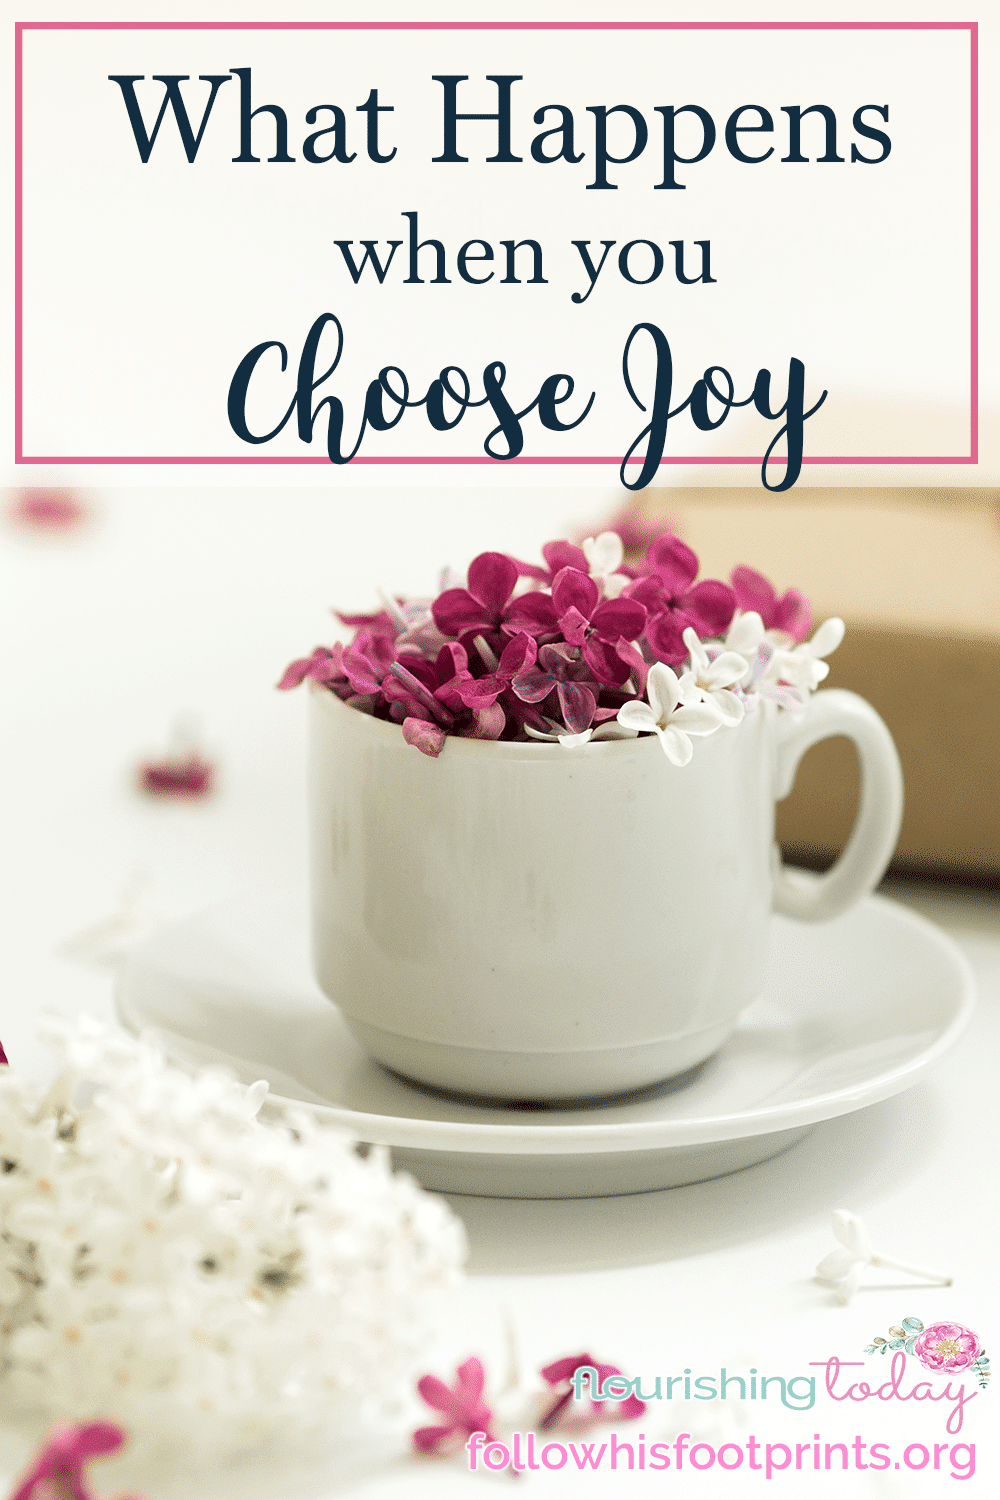 Are your circumstances stealing your joy? Despite what we see and feel we can choose joy. And when we do, we will see just how powerful our choice can be!